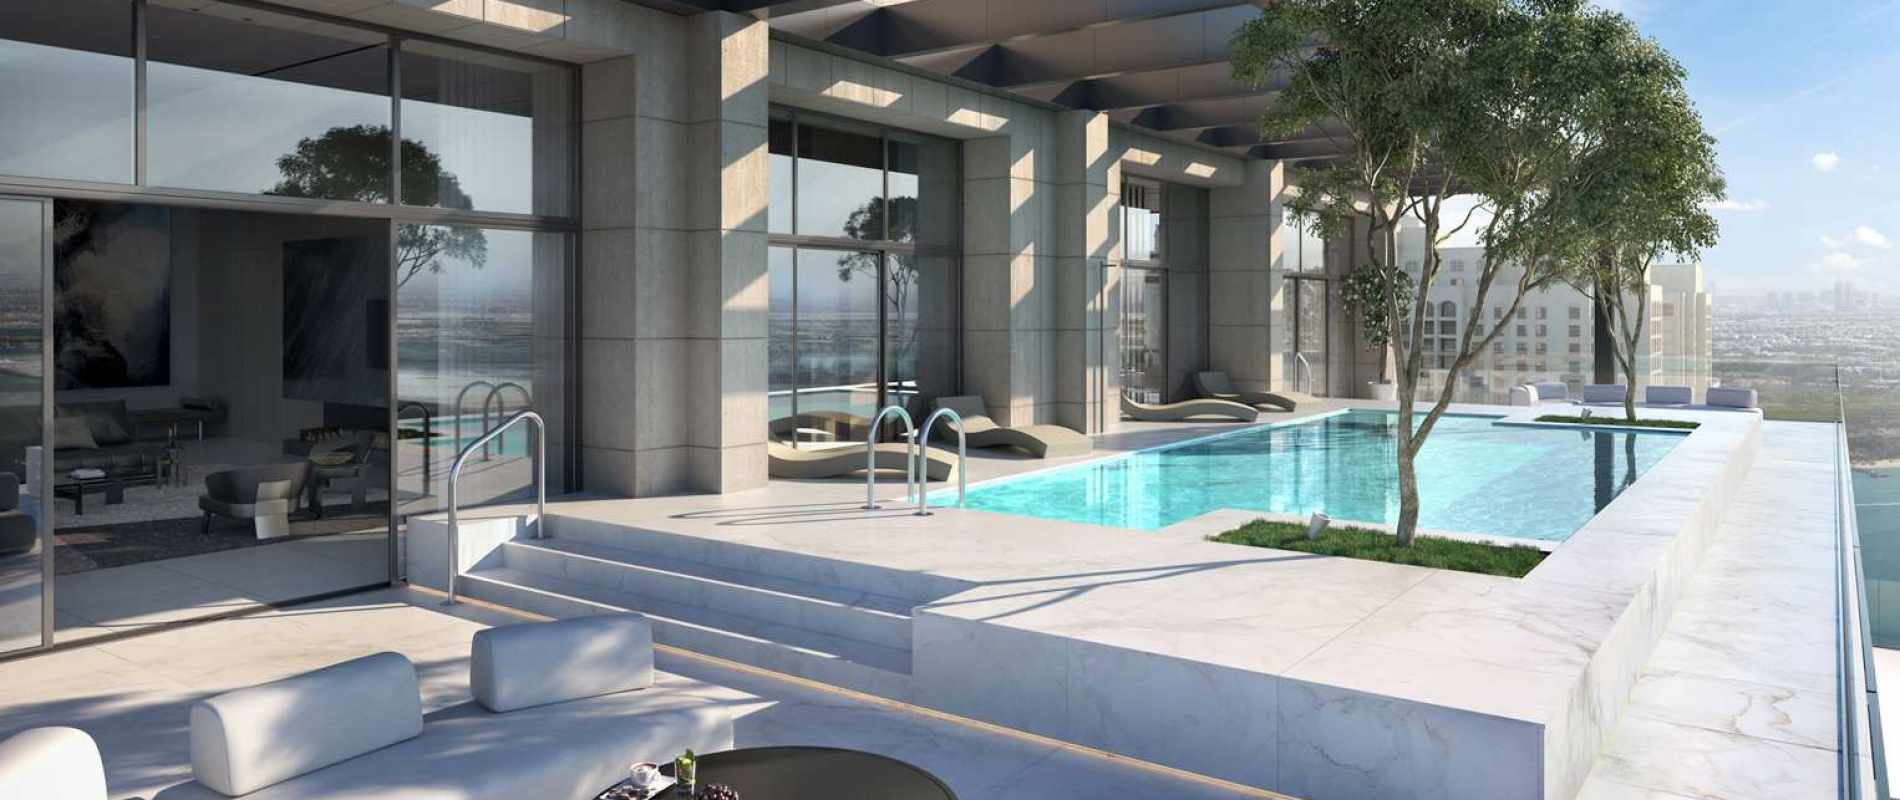 Luxury Property Dubai  - Property for sale in Palme Couture Palm Jumeirah